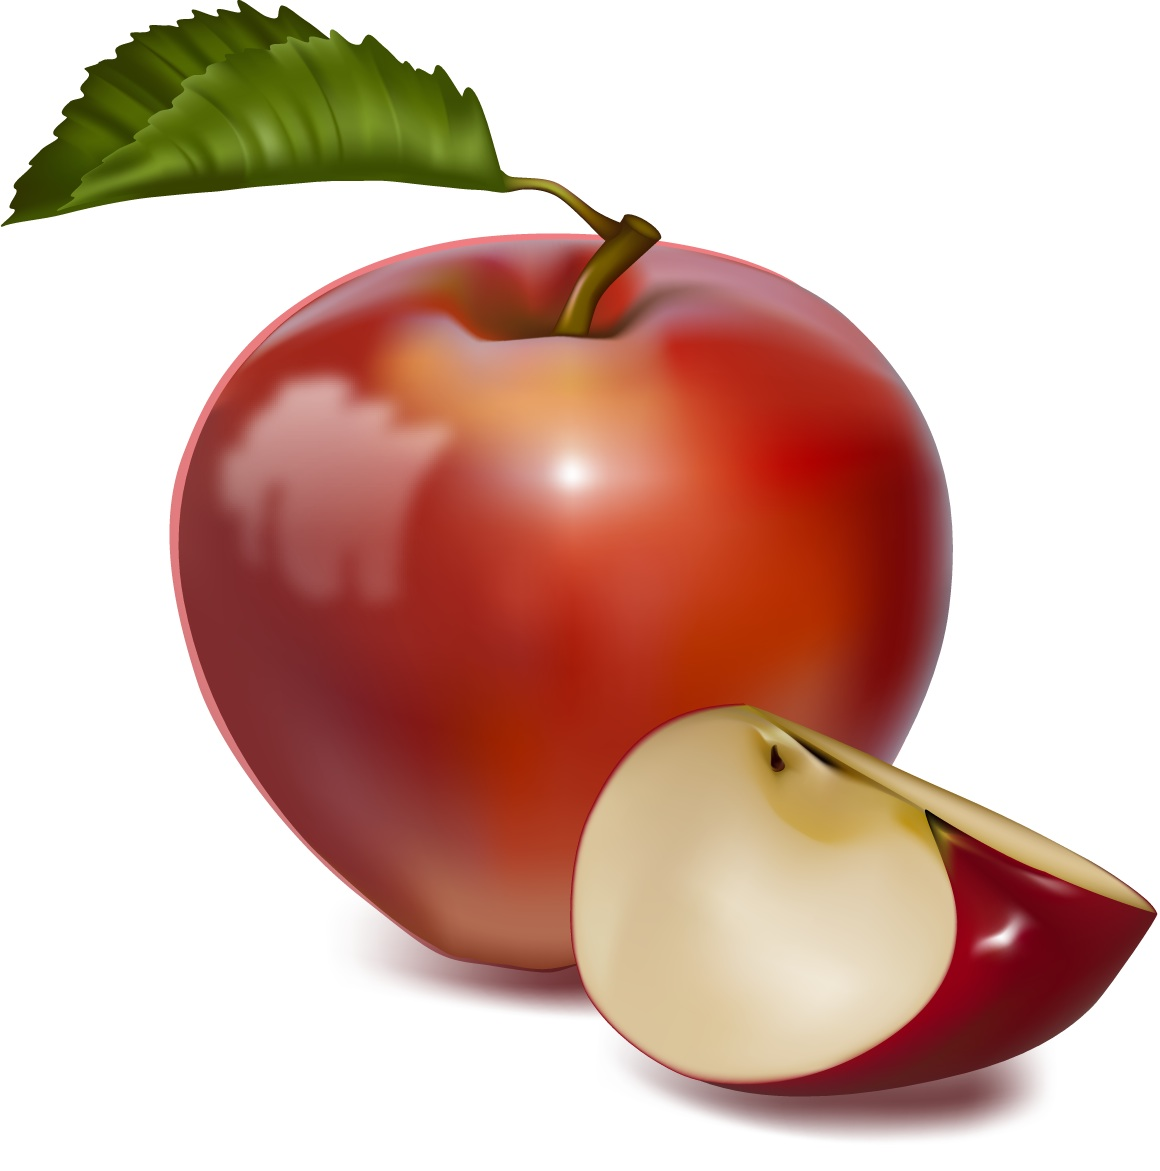 View apple_2a.jpg Clipart - Free Nutrition and Healthy ...